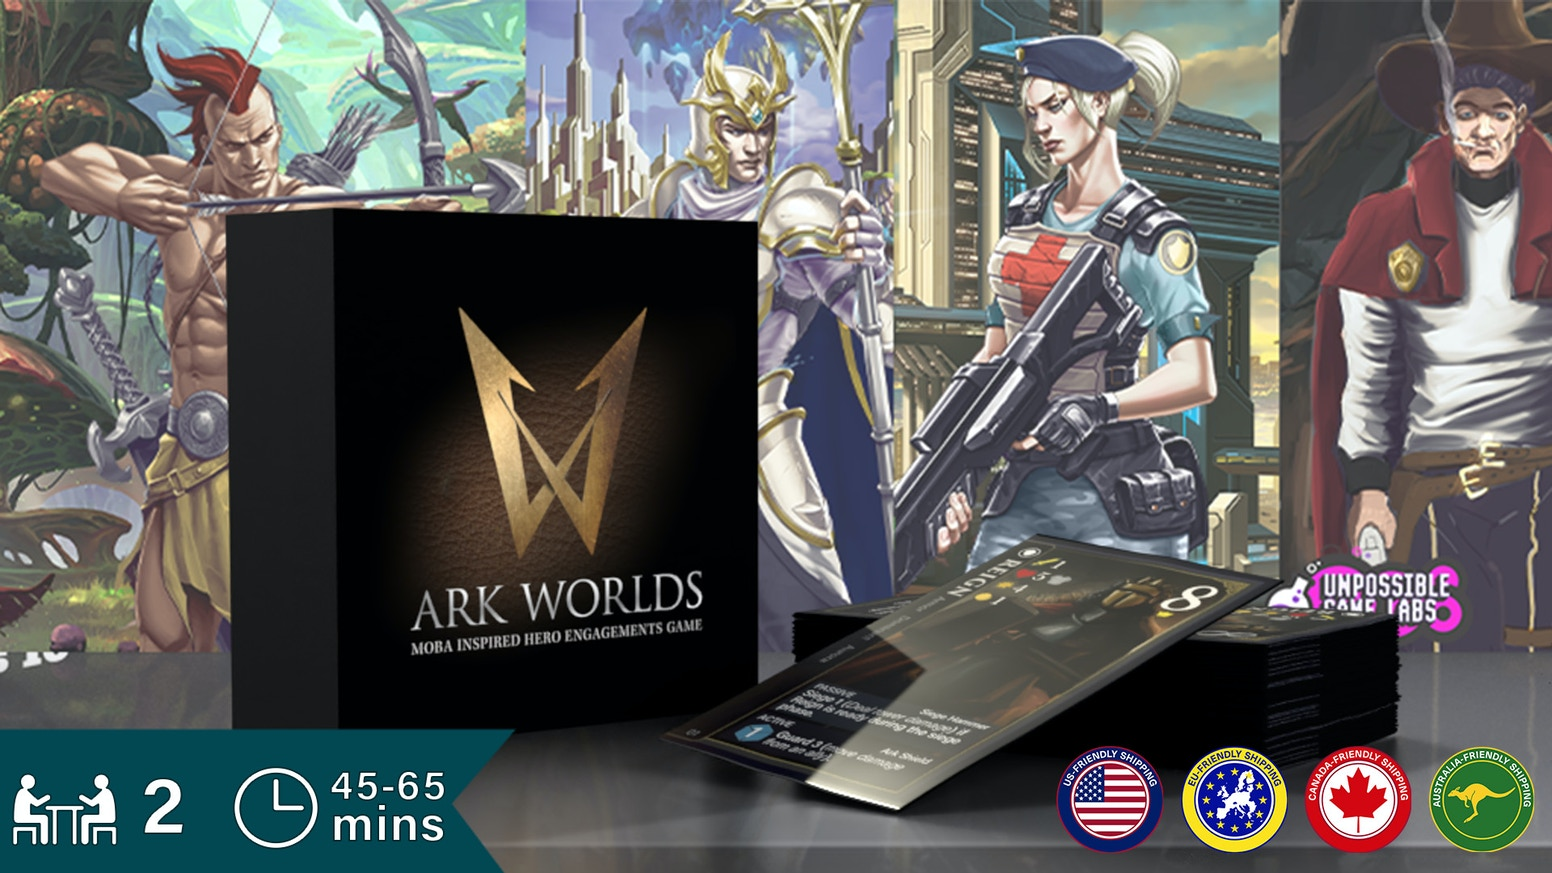 Choose your heroes wisely. Ark Worlds is a 2 player, MOBA card game of tactics and resource management that sets up in minutes.